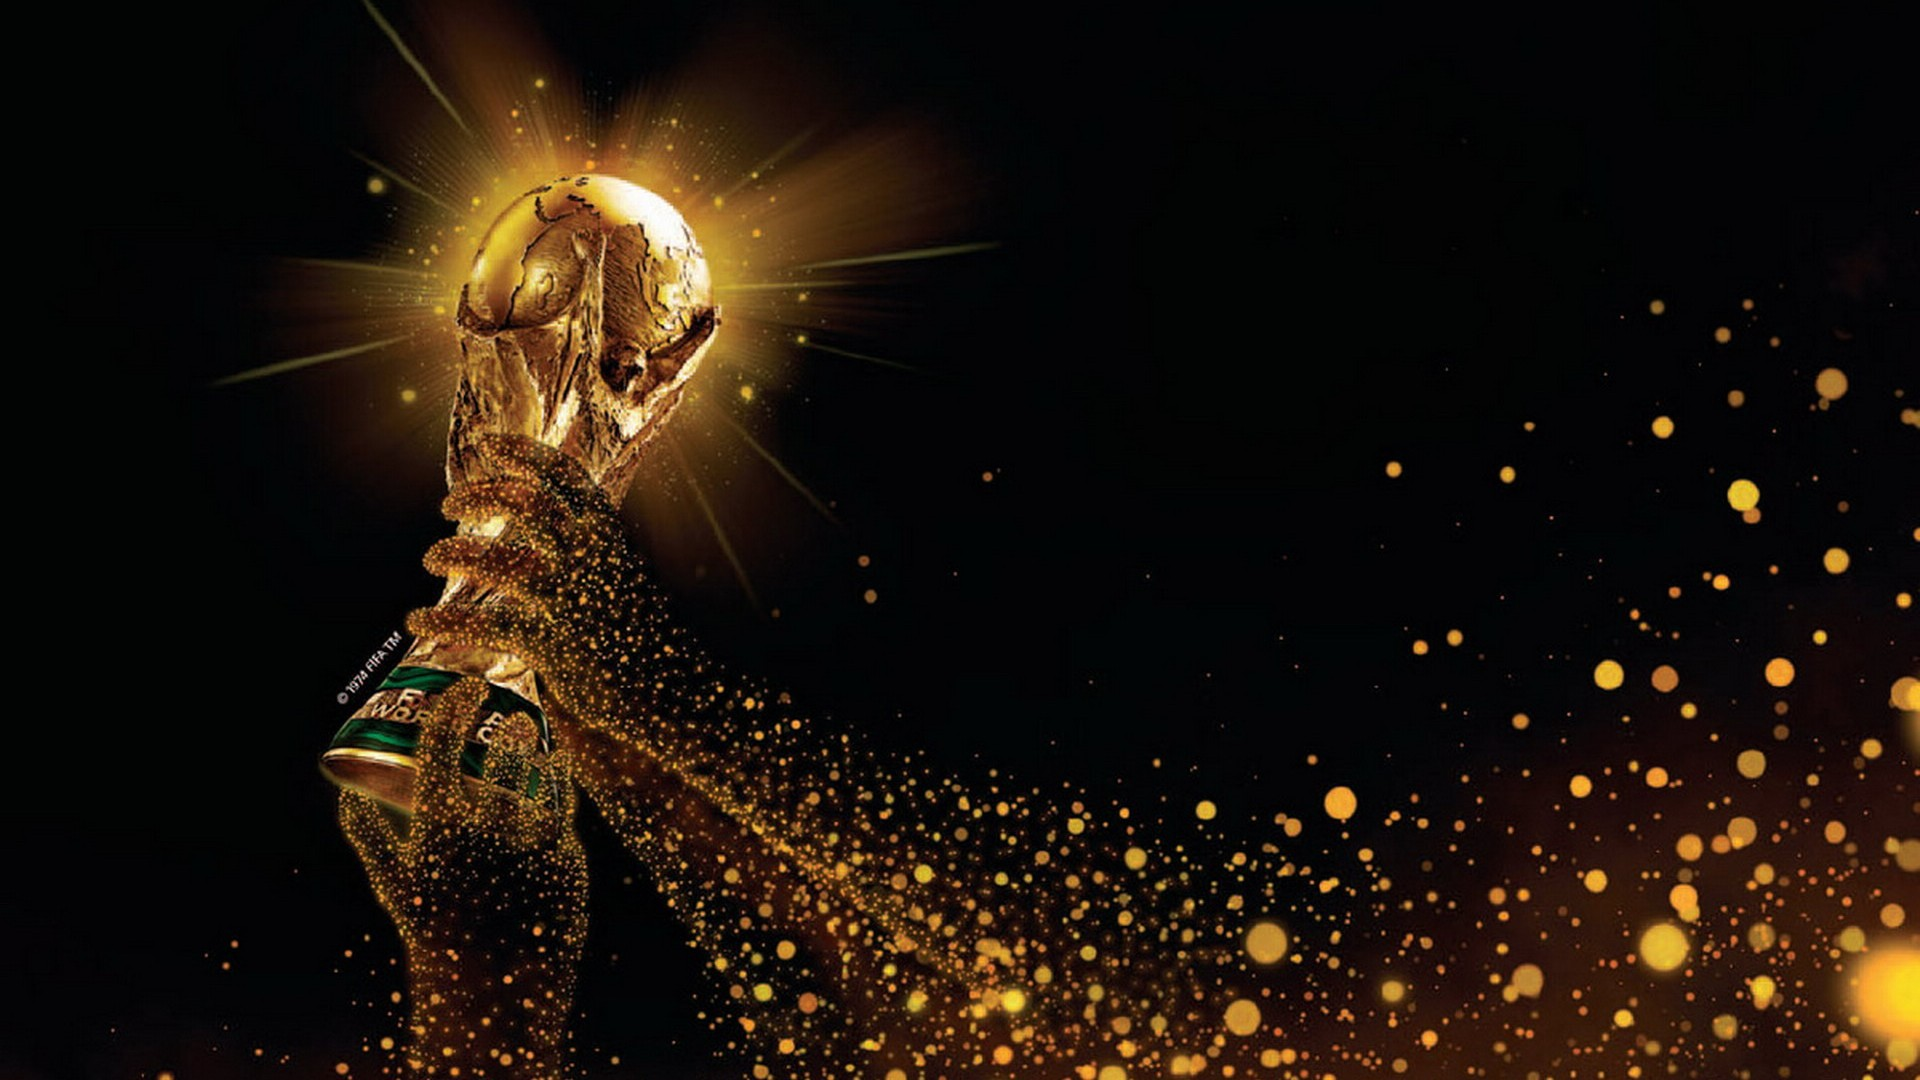 World Cup 2014 Series Part 1 History Of Soccer